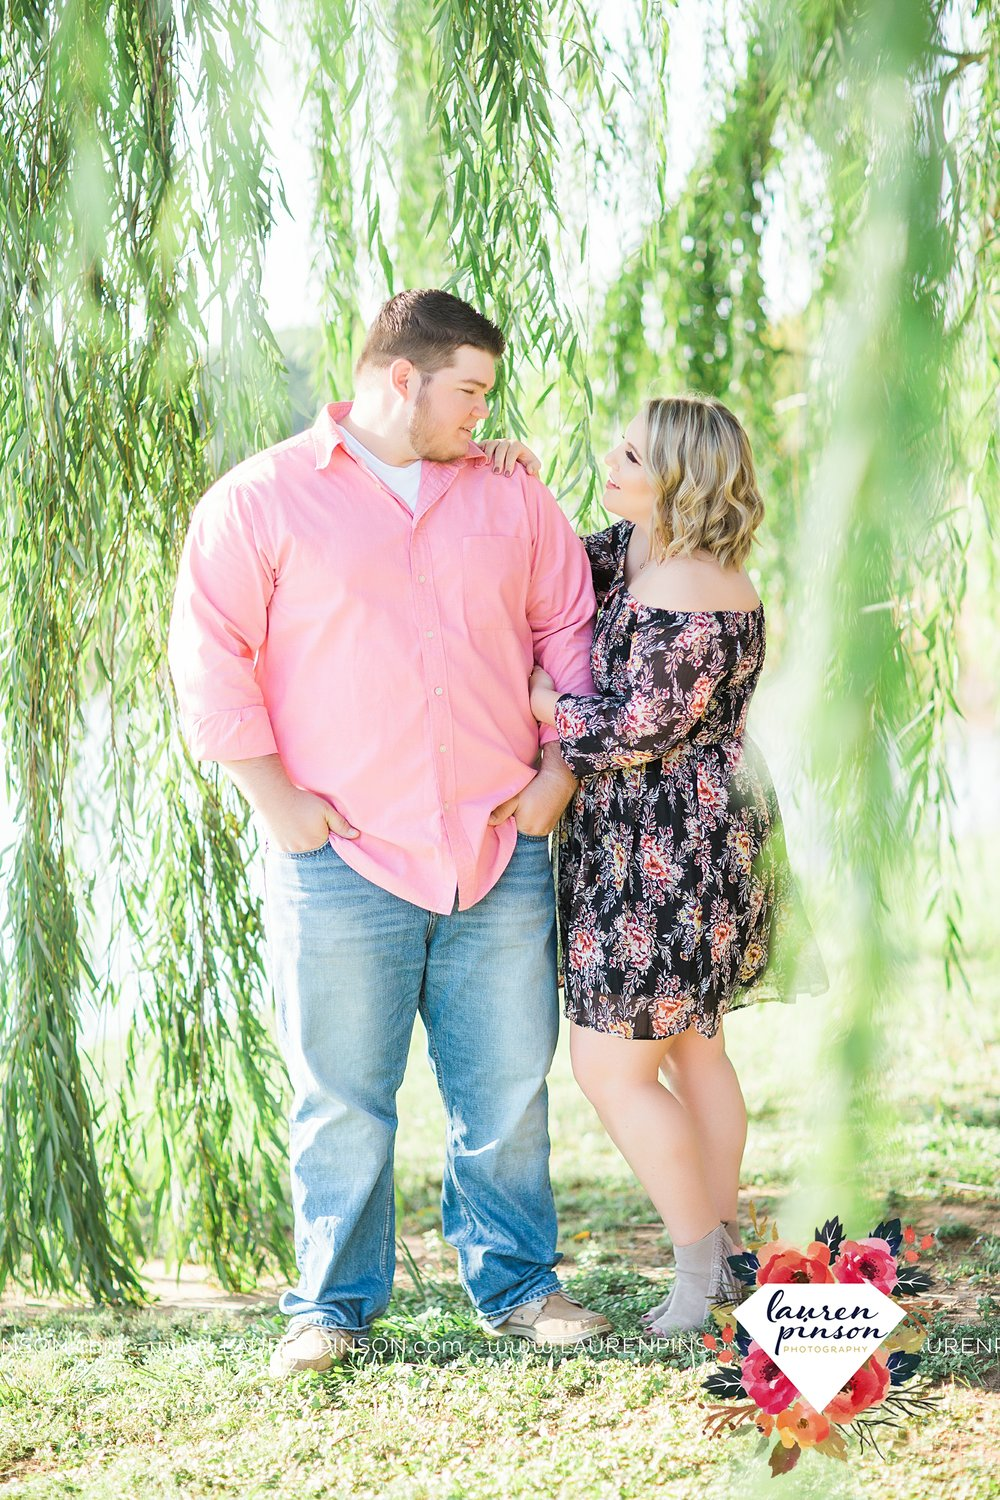 wichita-falls-engagement-and-wedding-photographer-lauren-pinson-photography_3641.jpg